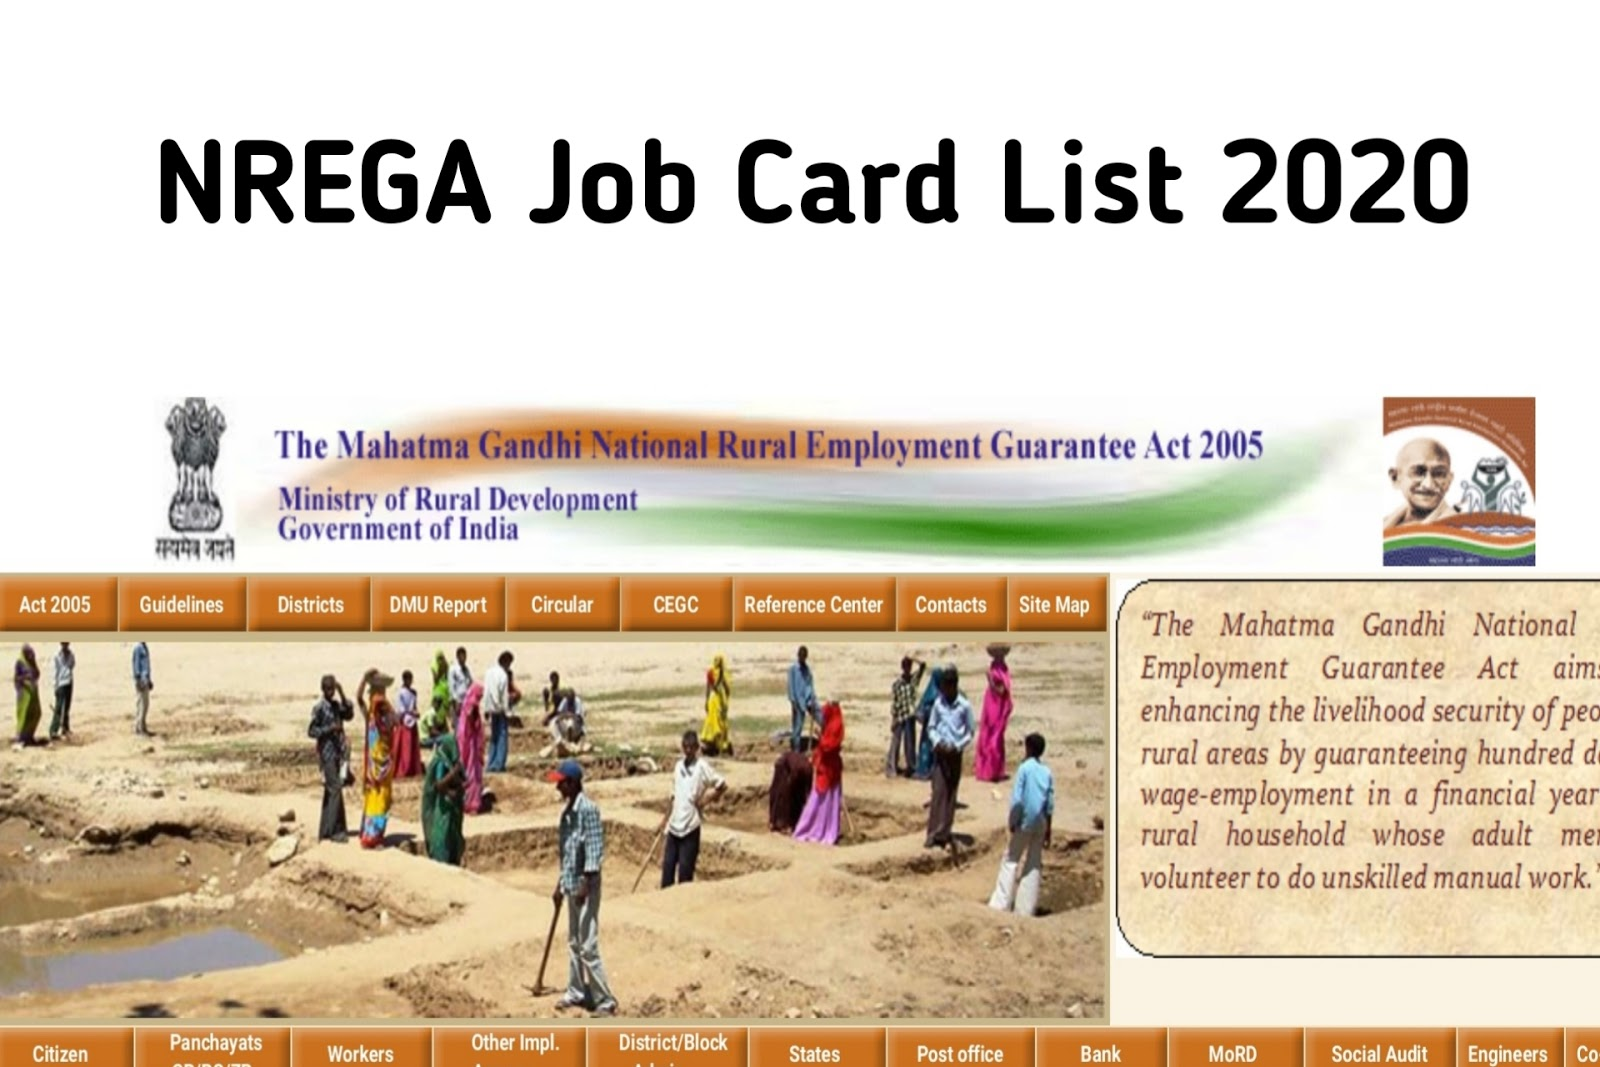 NREGA Job Card, NREGA Job Card list